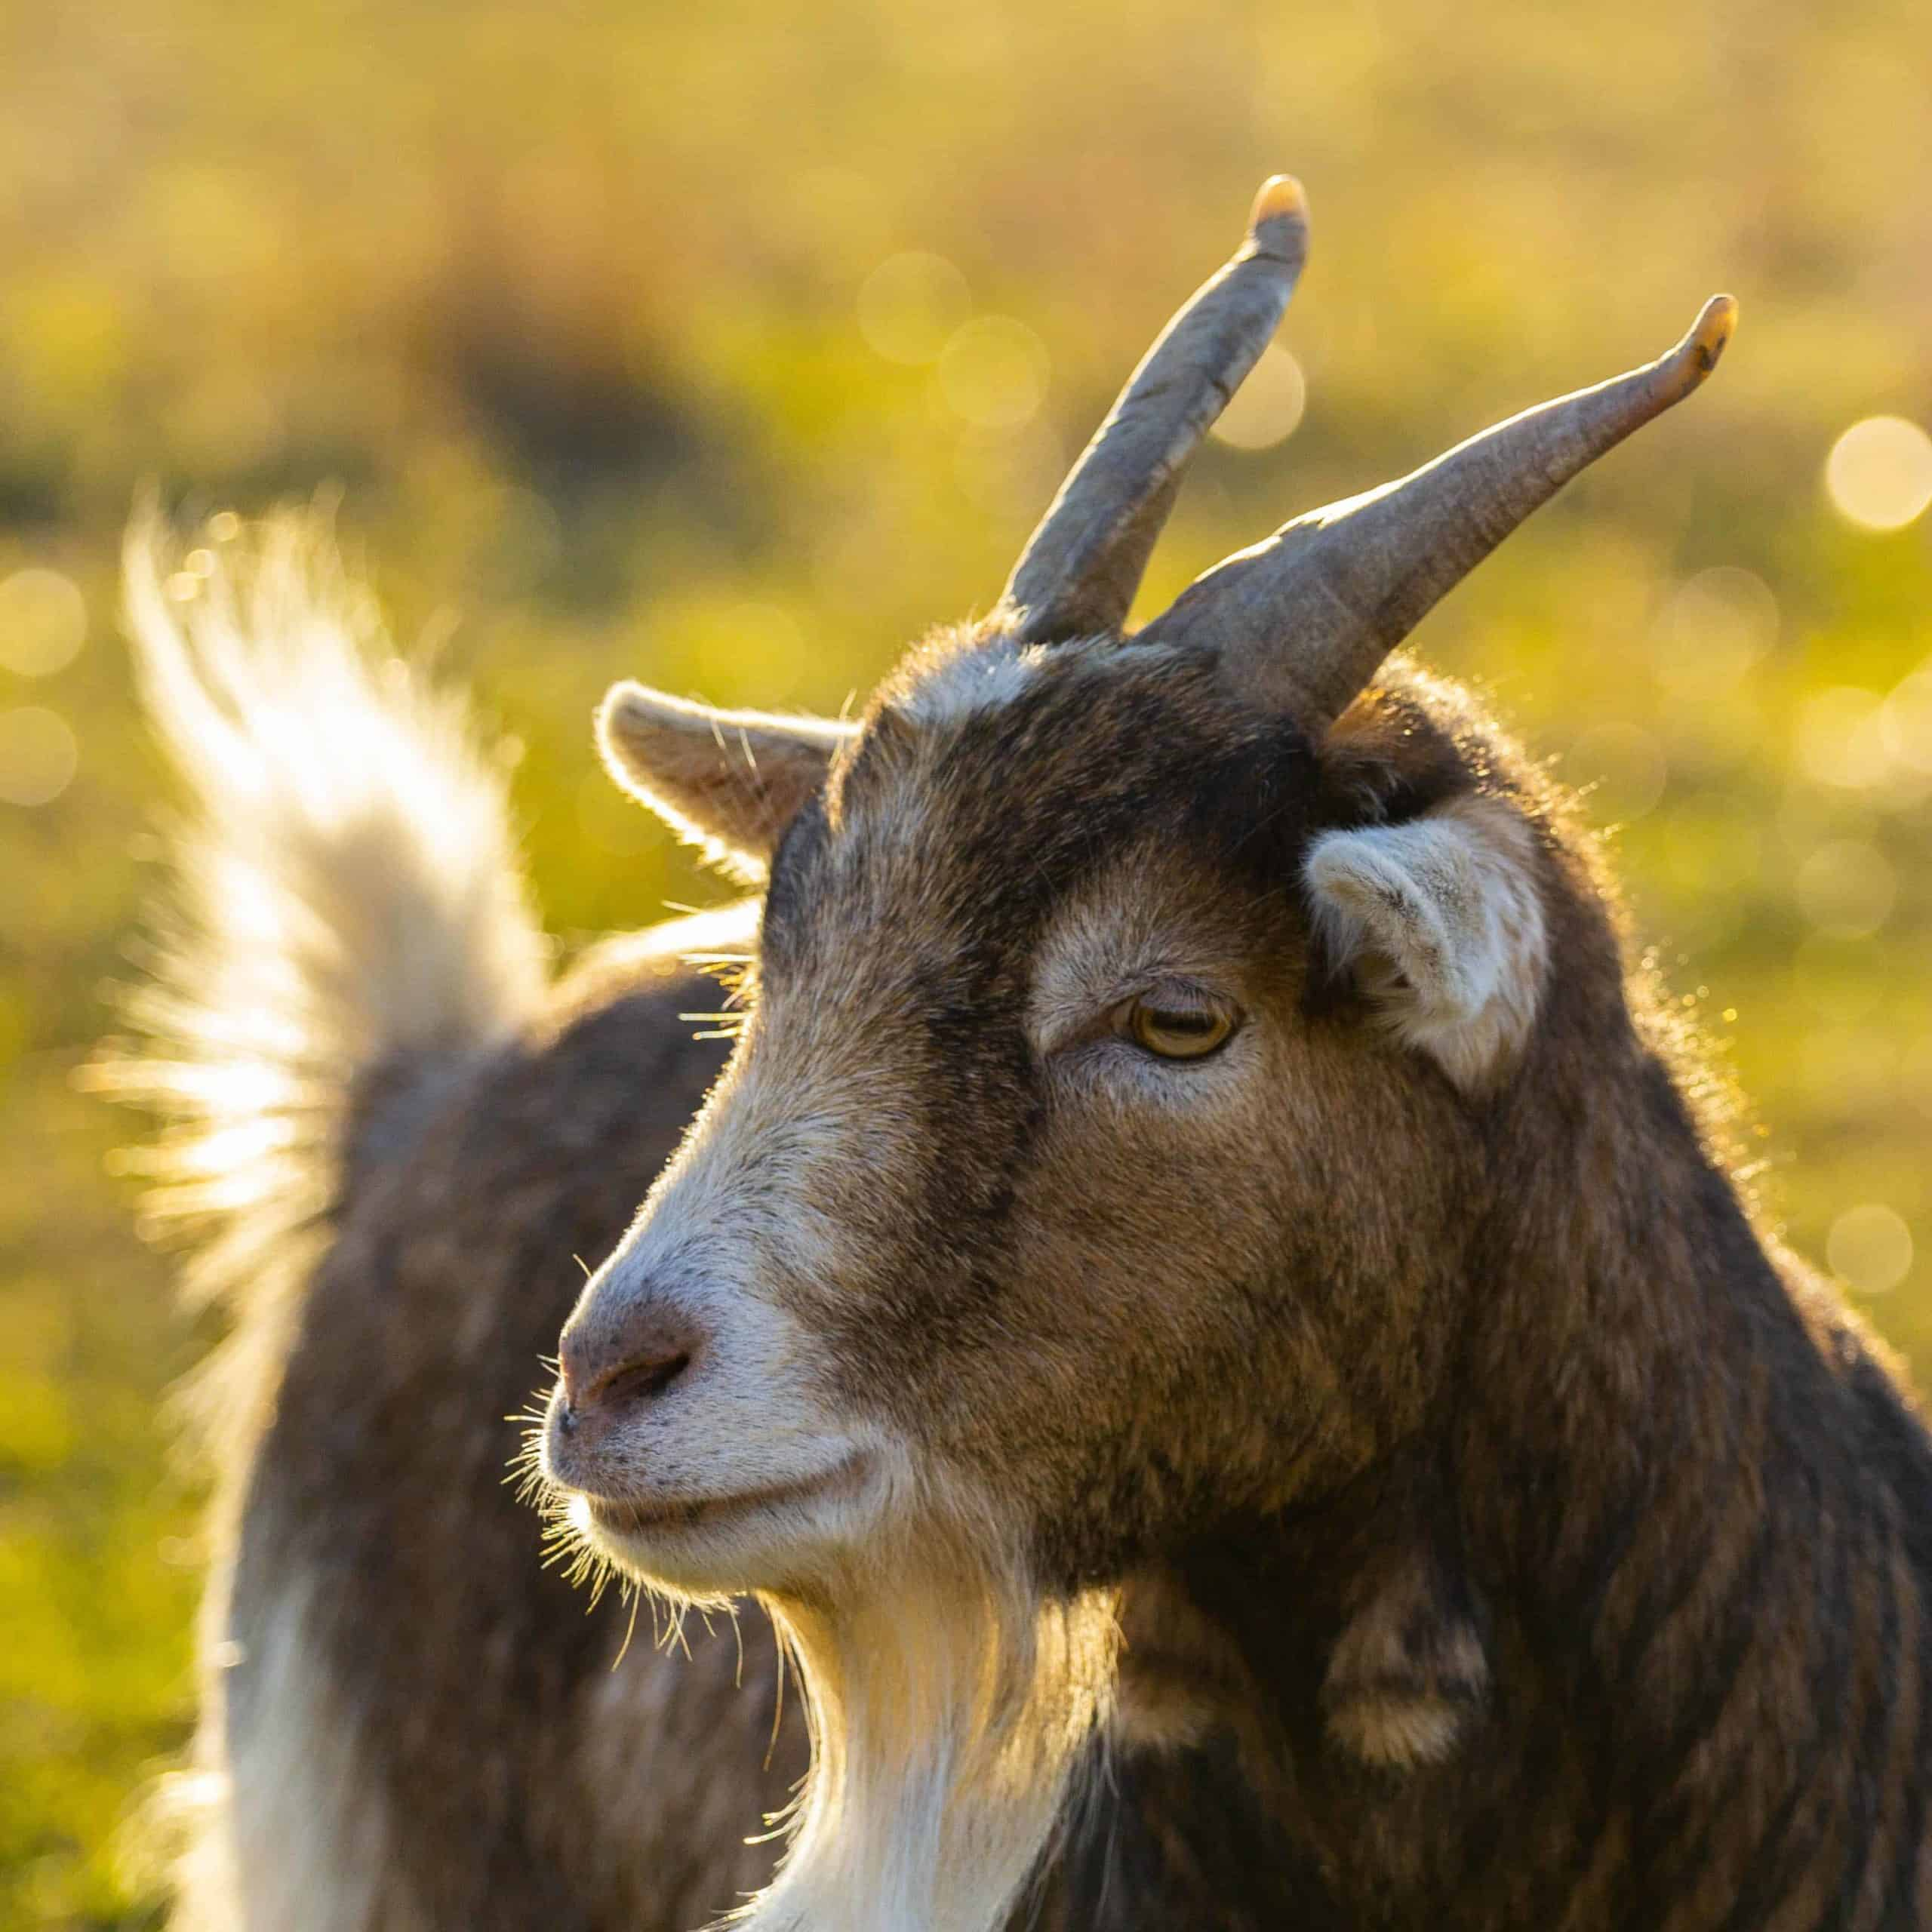 Close-up image of a goat in a field.